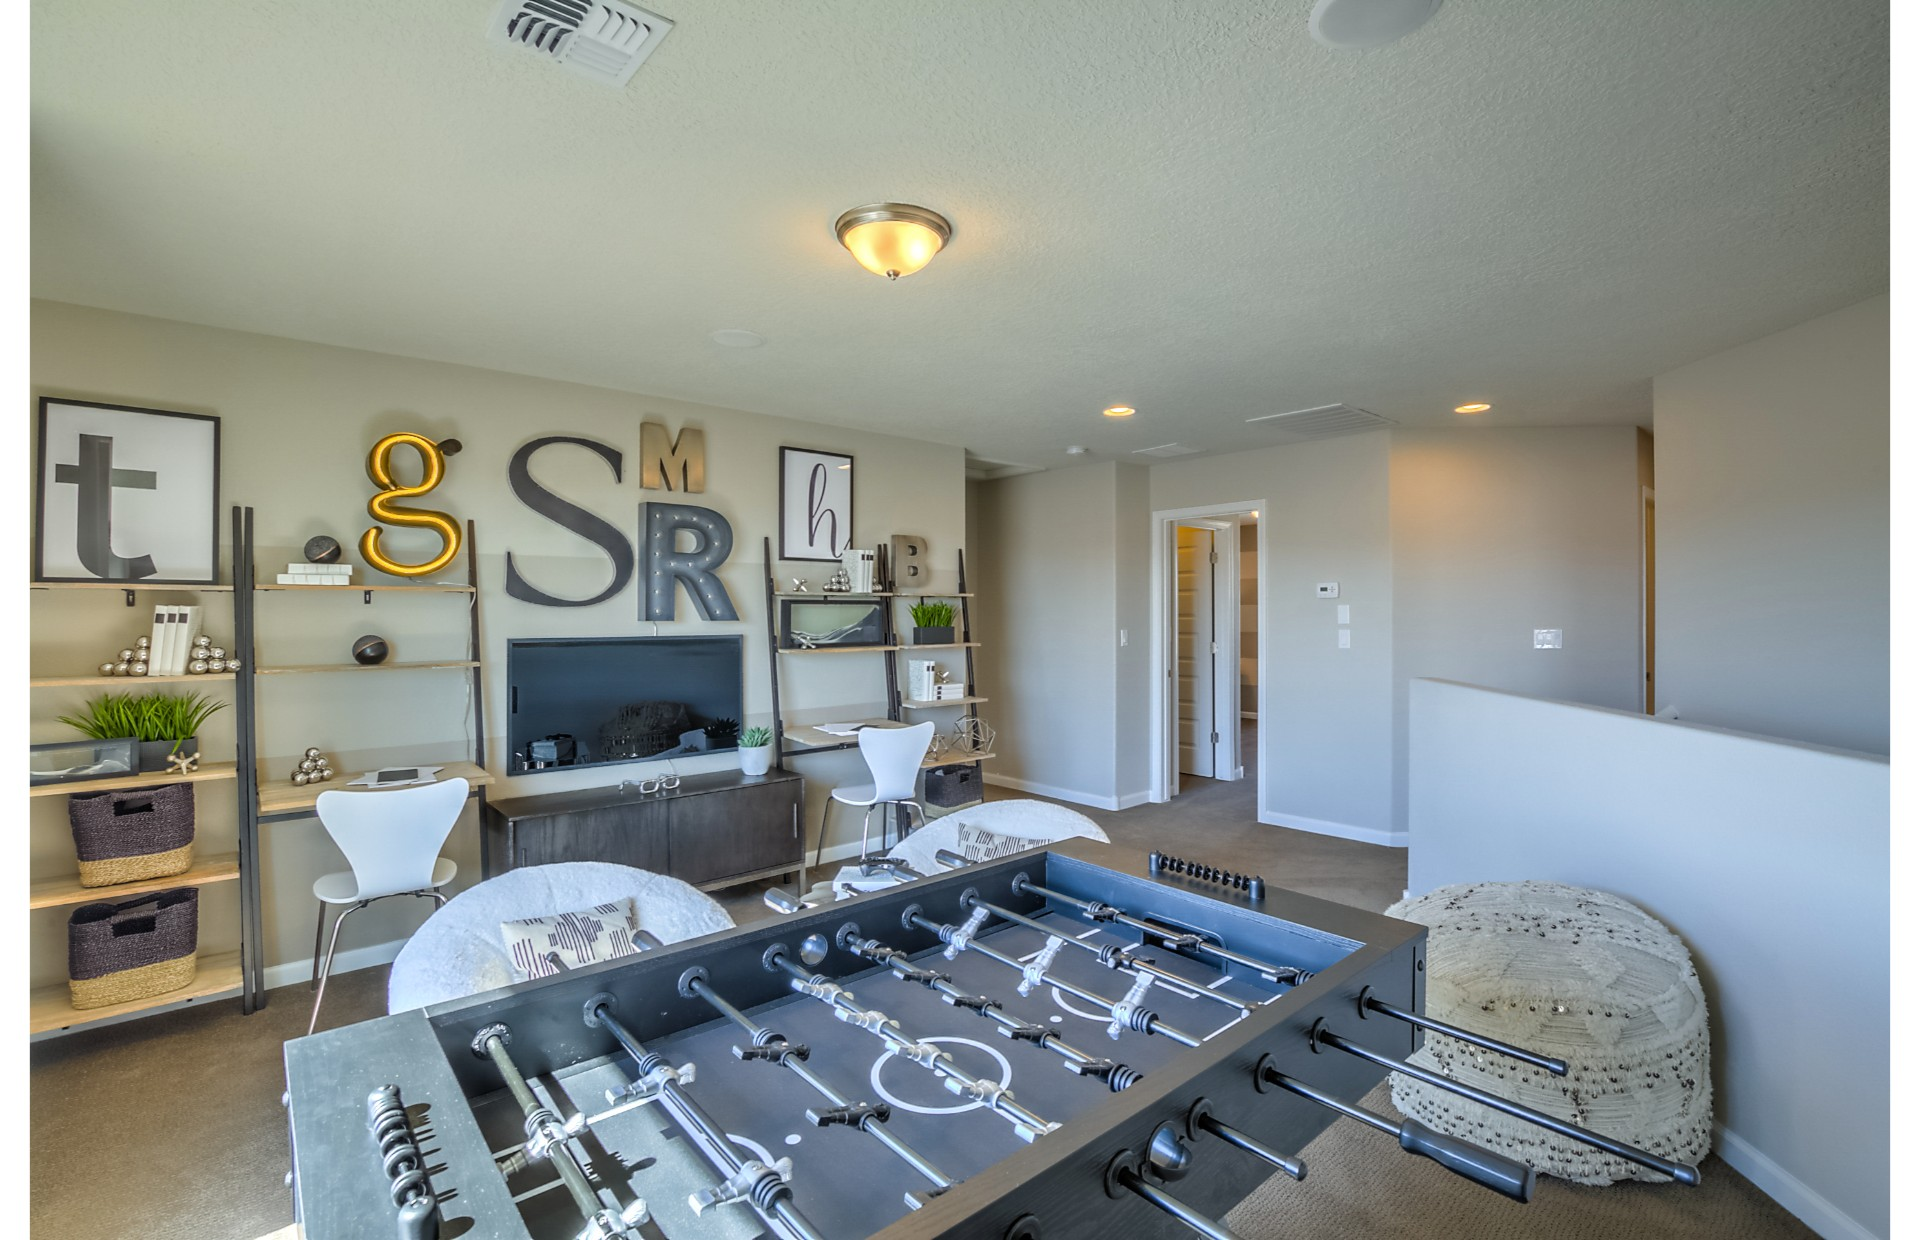 The Ridge at Stormcloud by Pulte Homes image 2